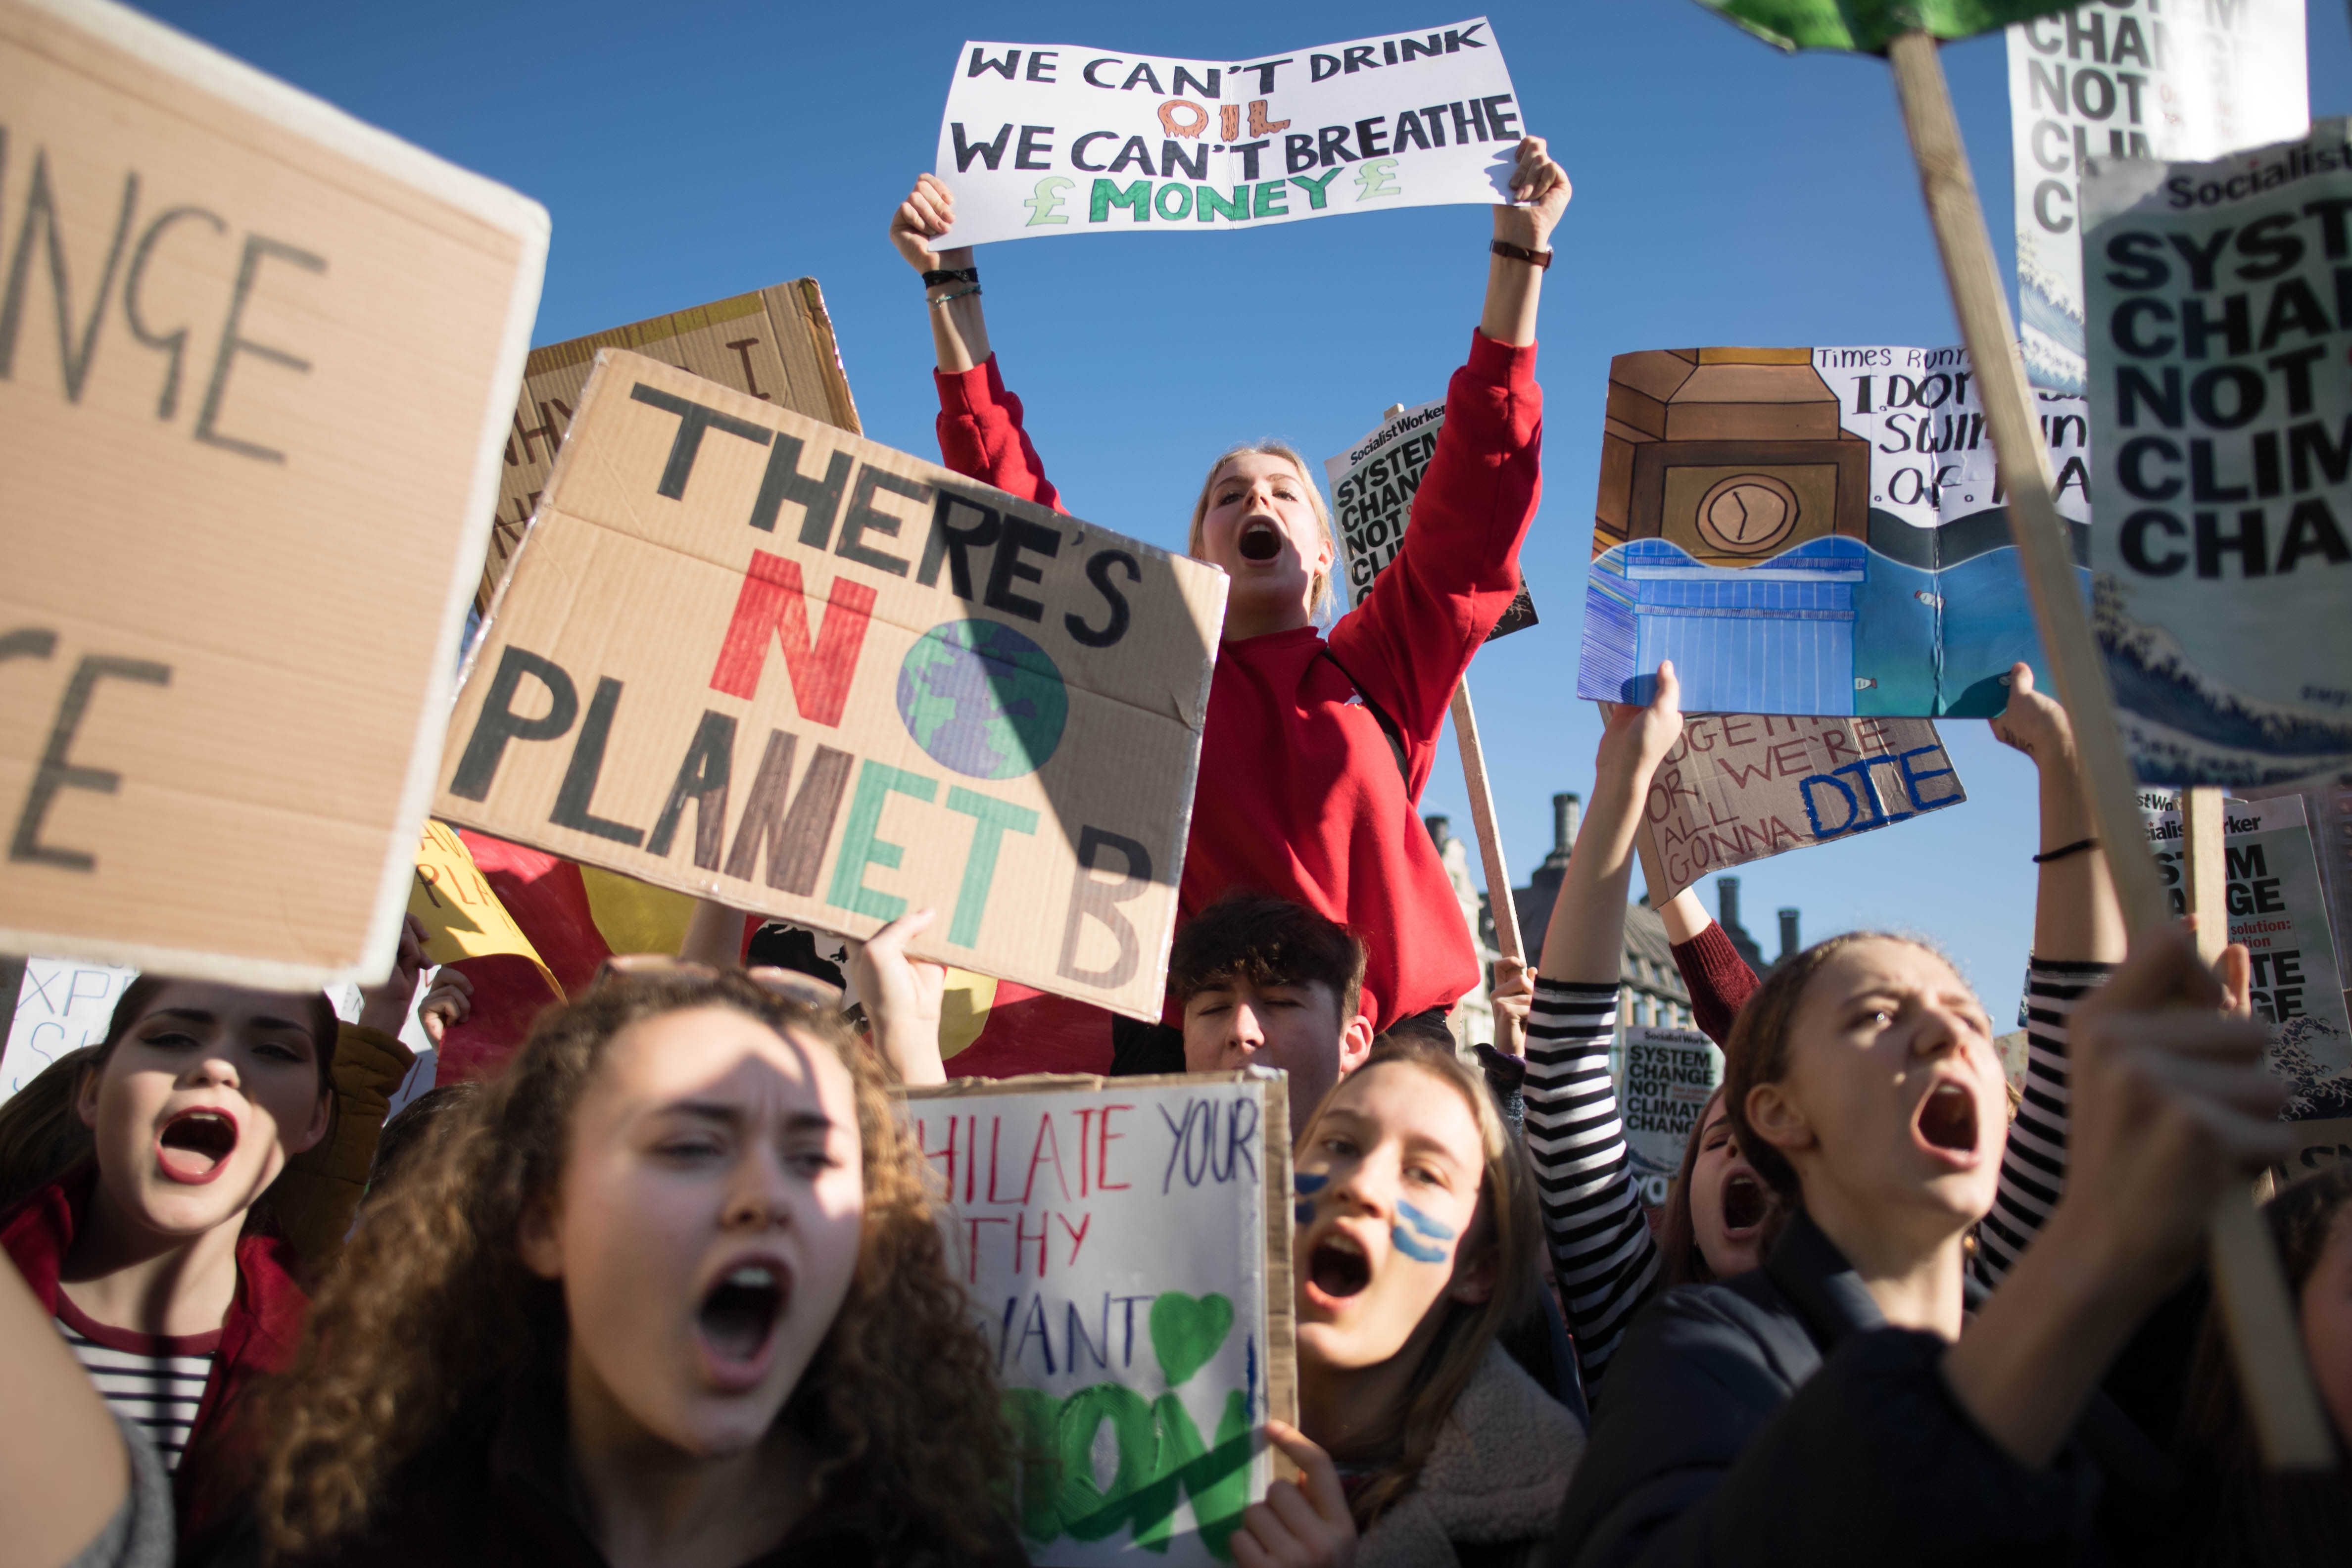 Students from the Youth Strike 4 Climate movement during a climate change protest on Parliament Square in Westminster, London